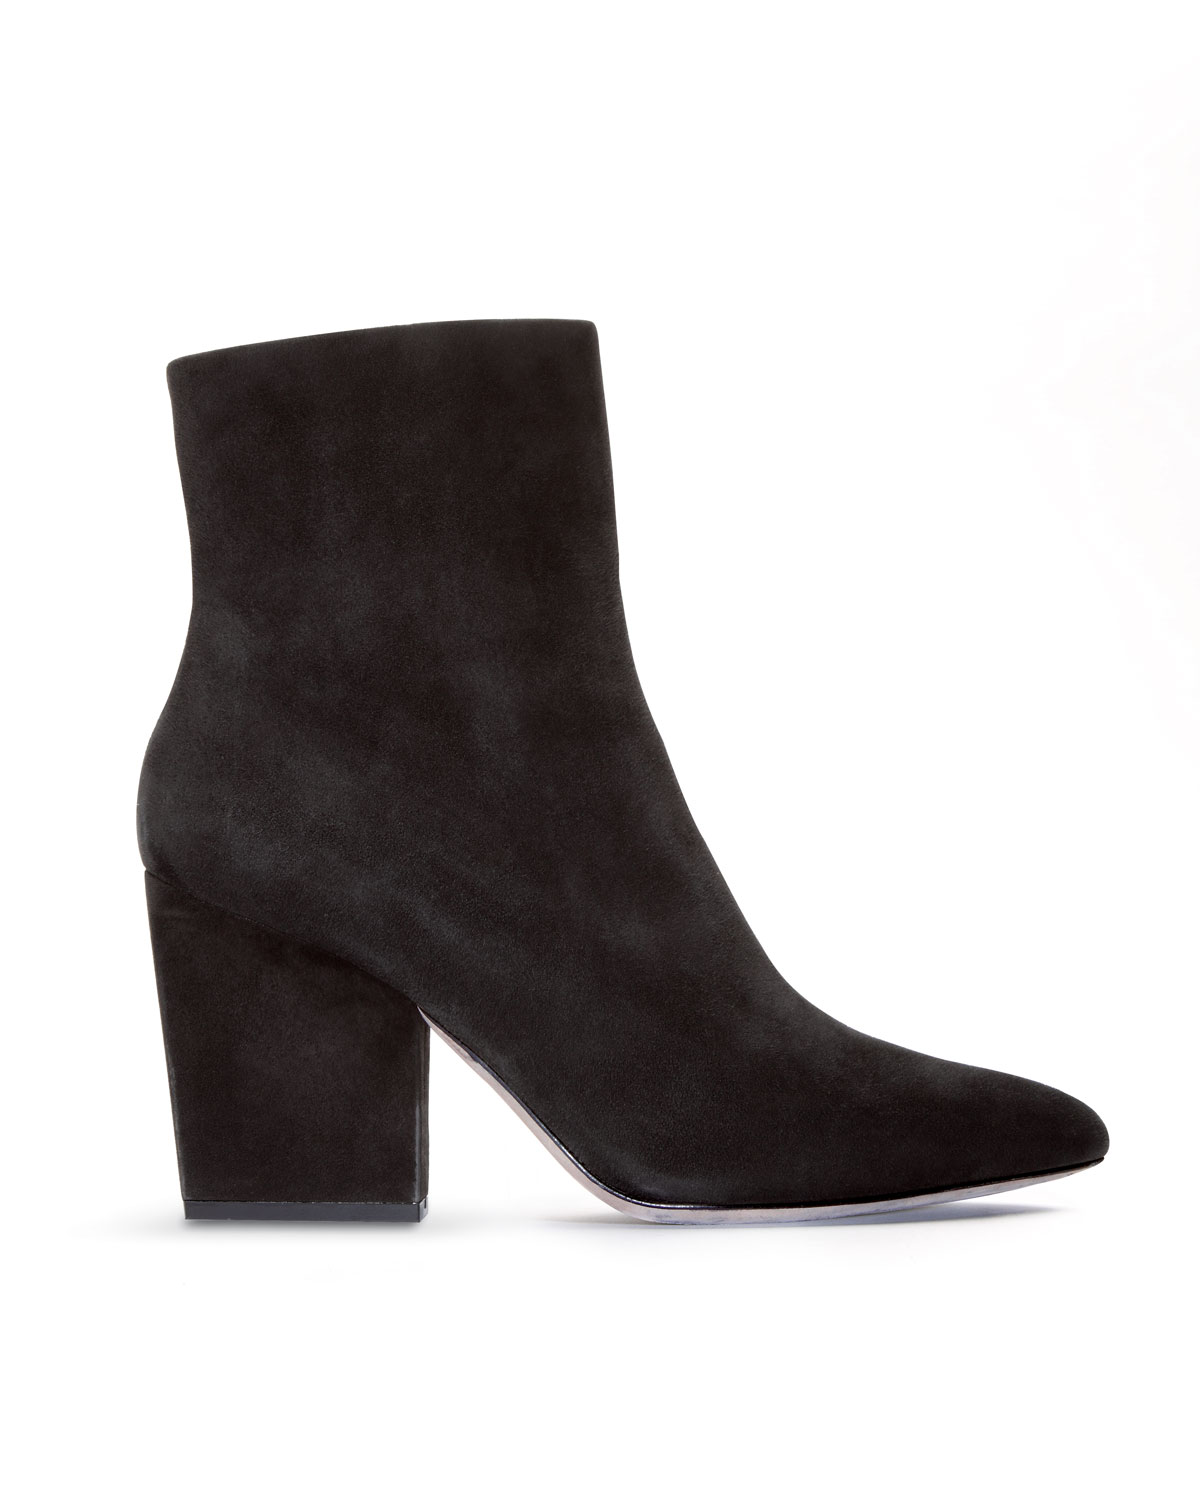 21d8e753c9b0 Lyst - Alexander Wang Sunniva Suede Pointed toe Bootie in Black